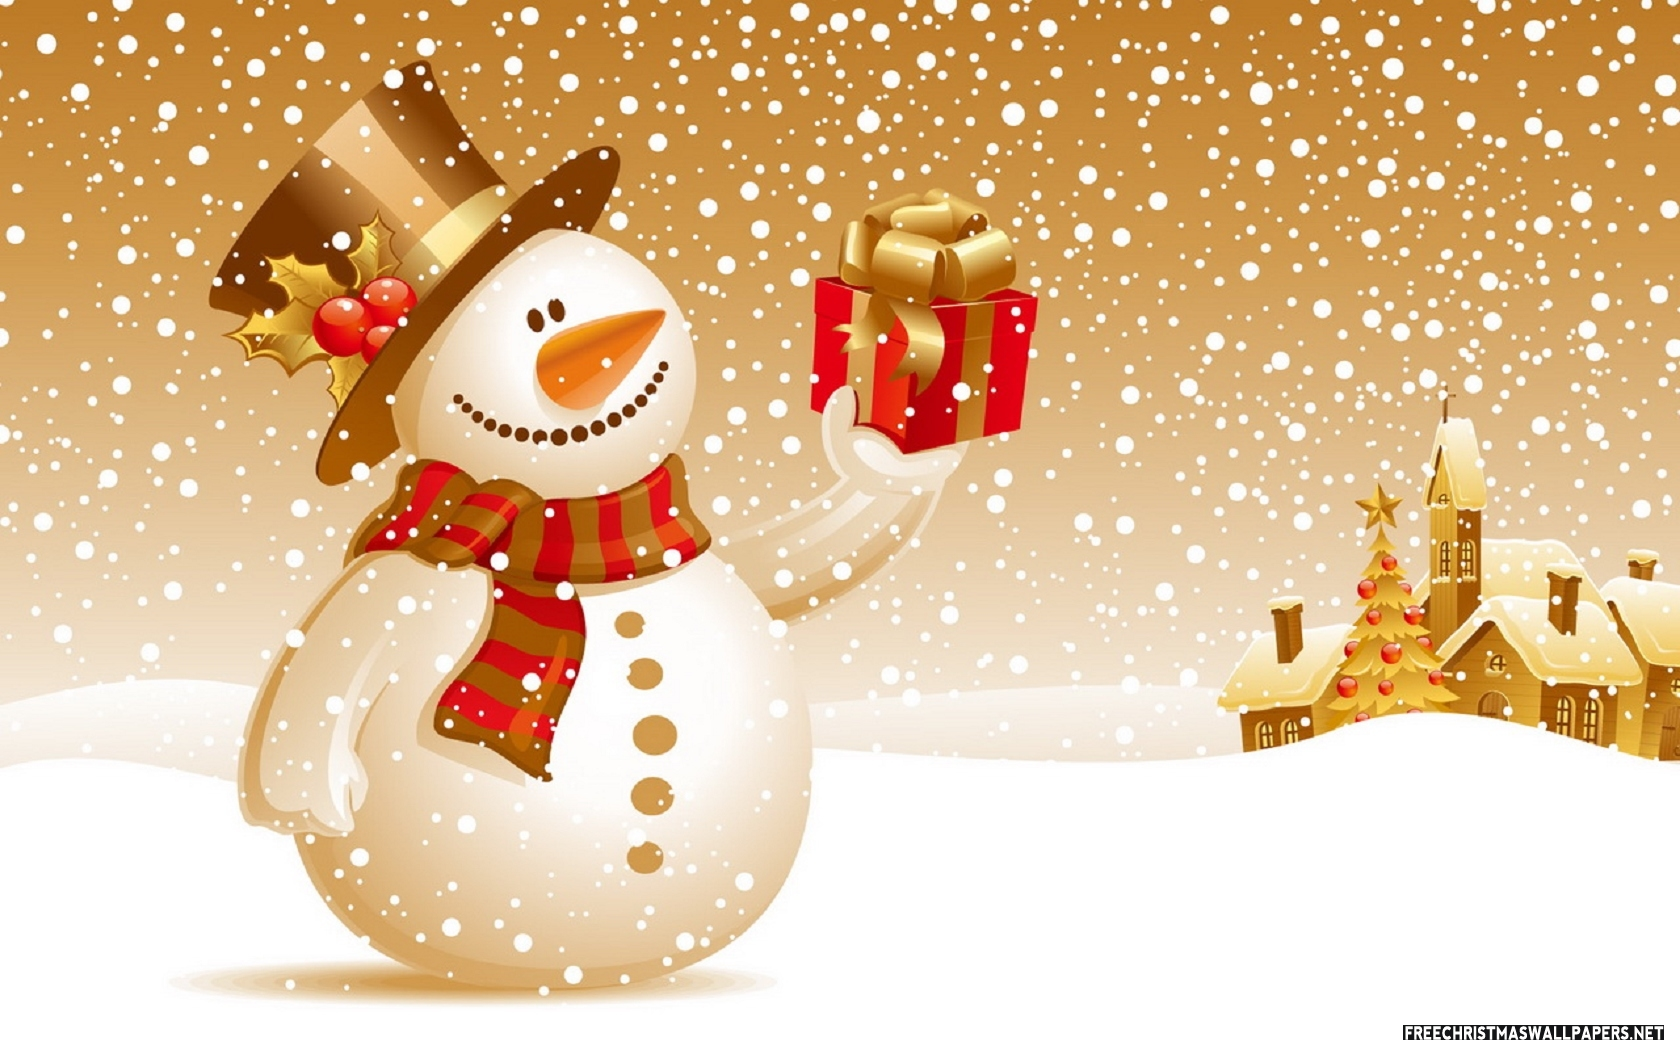 snowman with gift picture